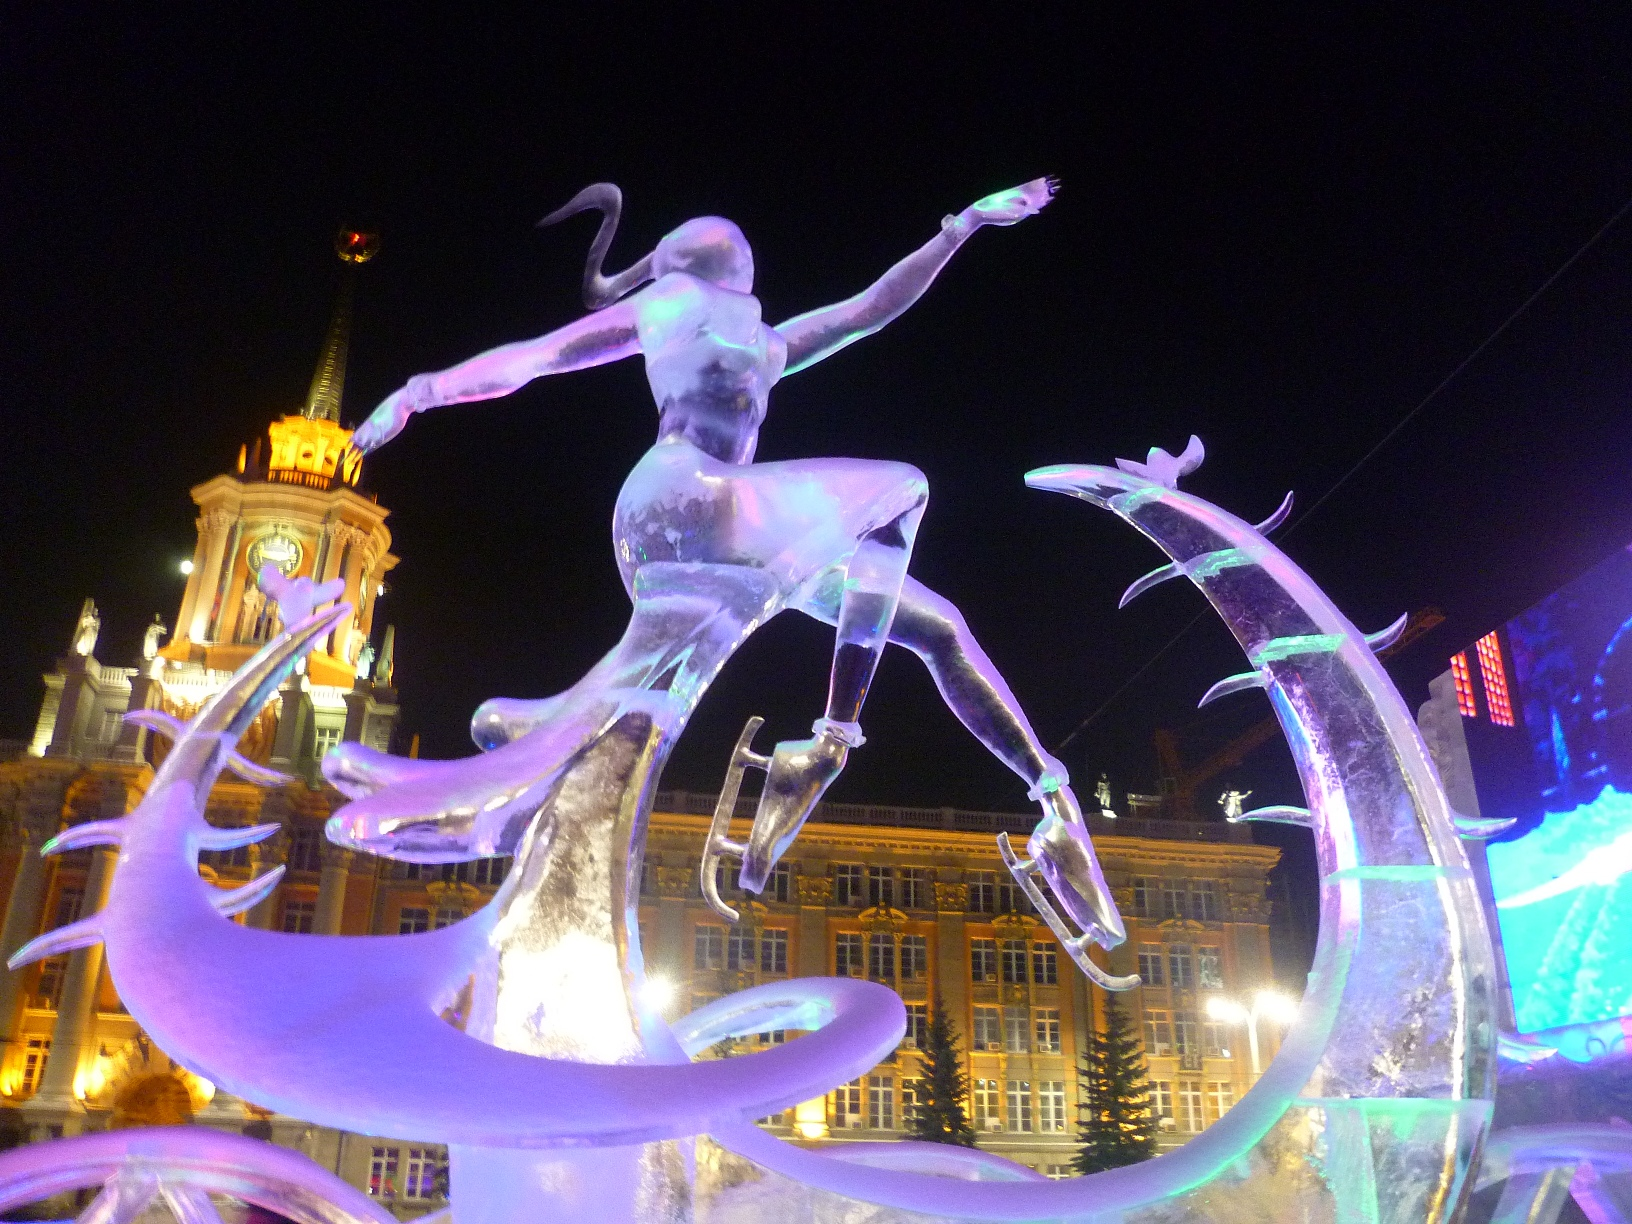 Yekaterinburg ice town has over 380,000 visitors